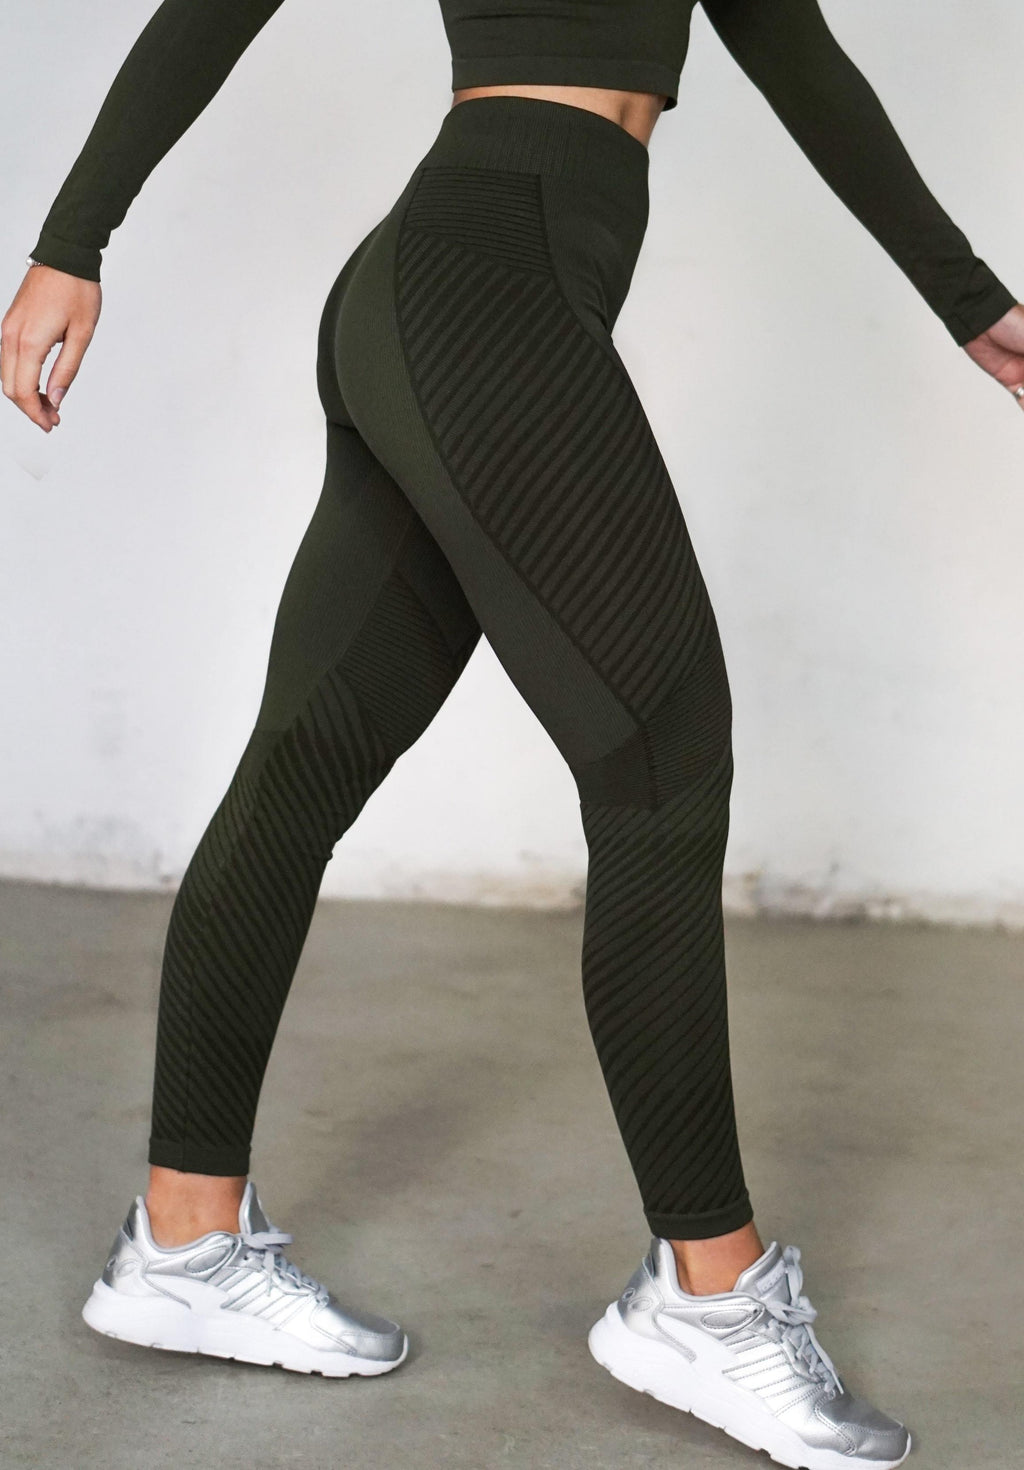 Antares Leggings - Military Green - Sold Out